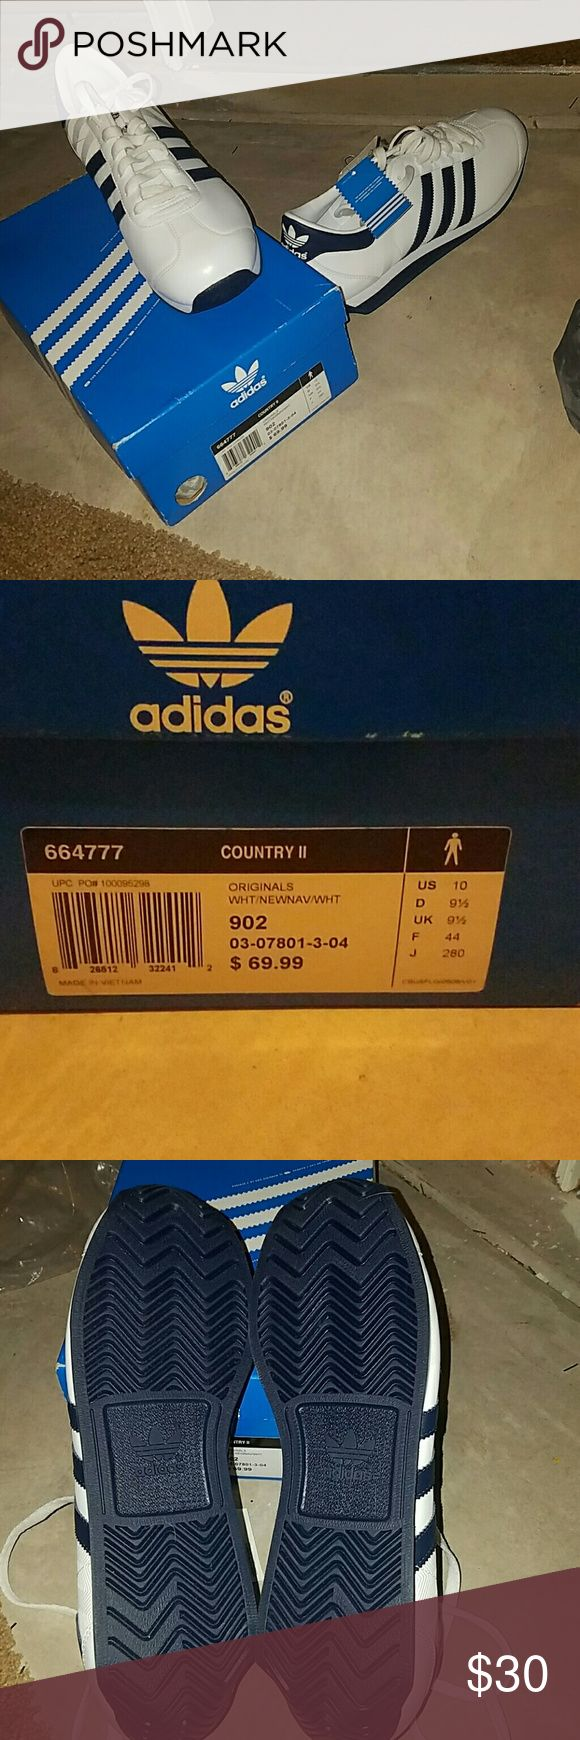 Adidas Country II, Size 10 NWT, Never worn, White and Navy Adidas Shoes Sneakers